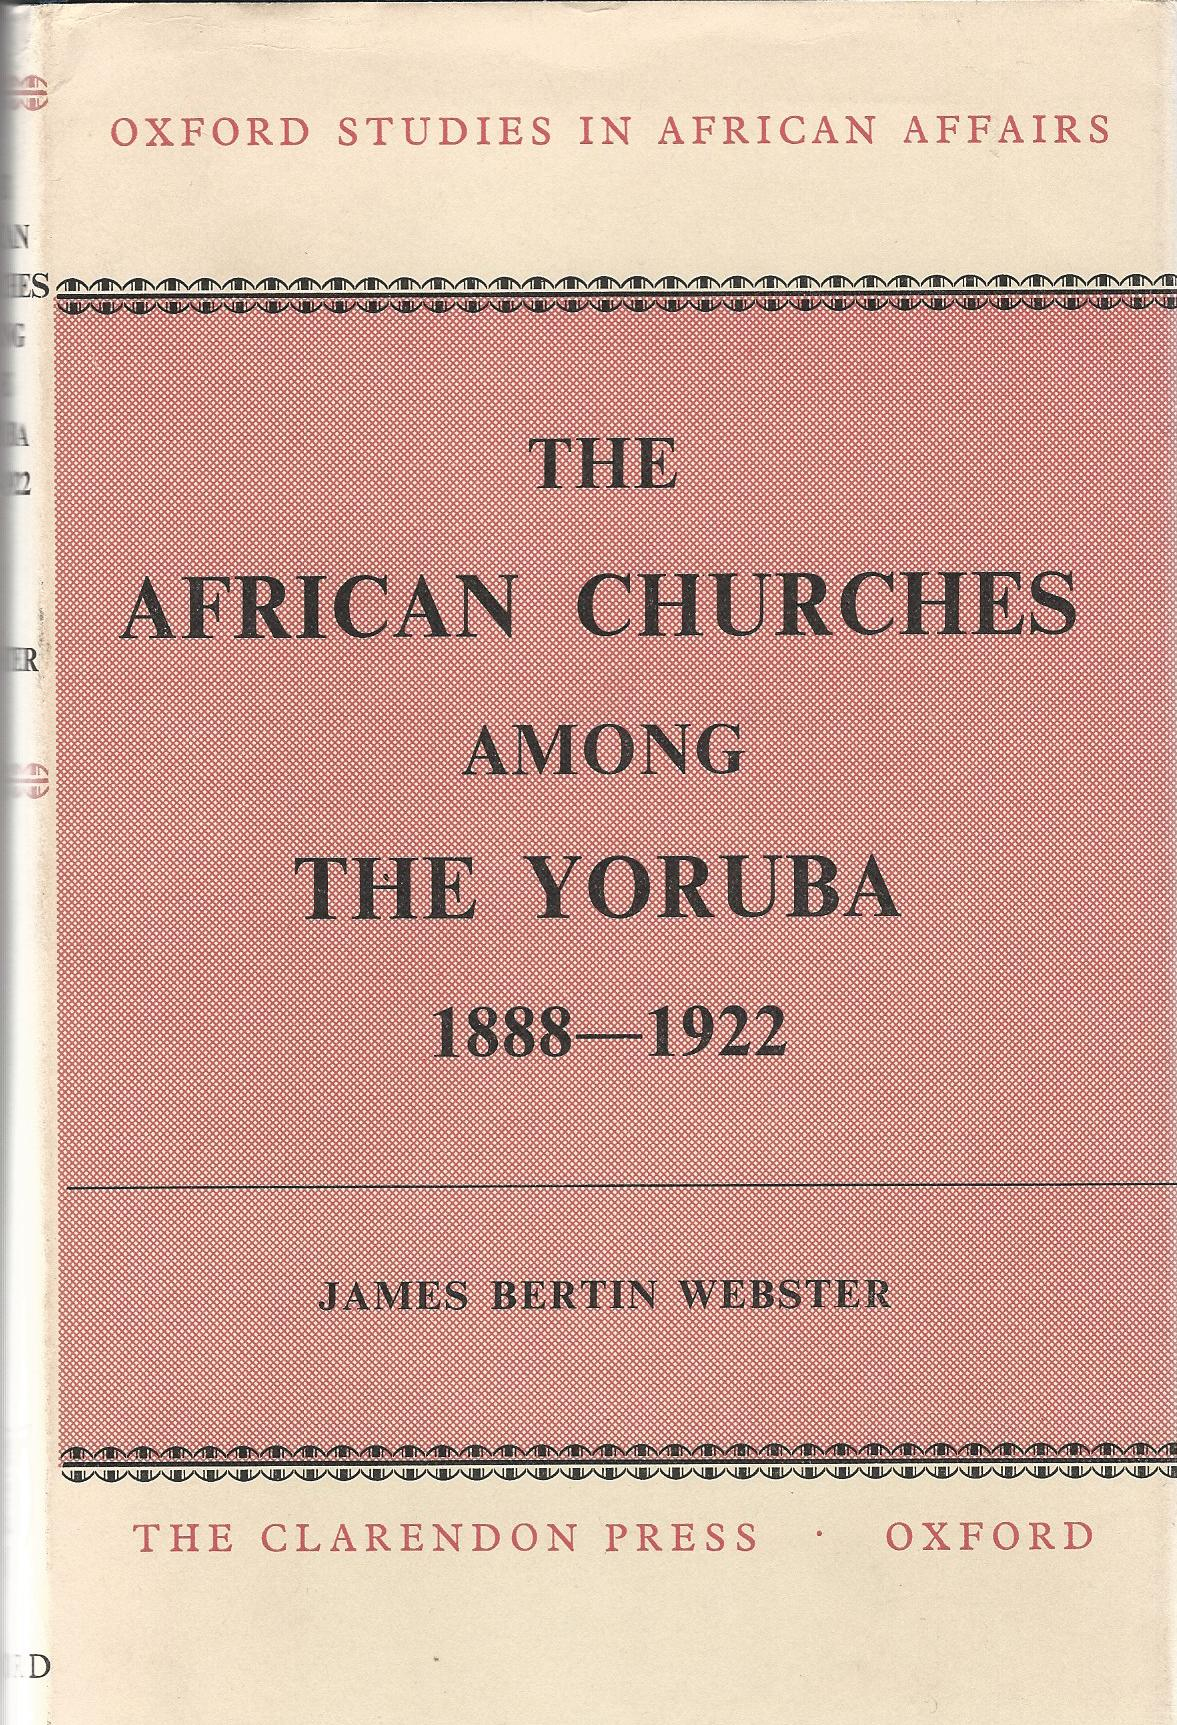 Image for The African Churches among The Yoruba 1888-1922.